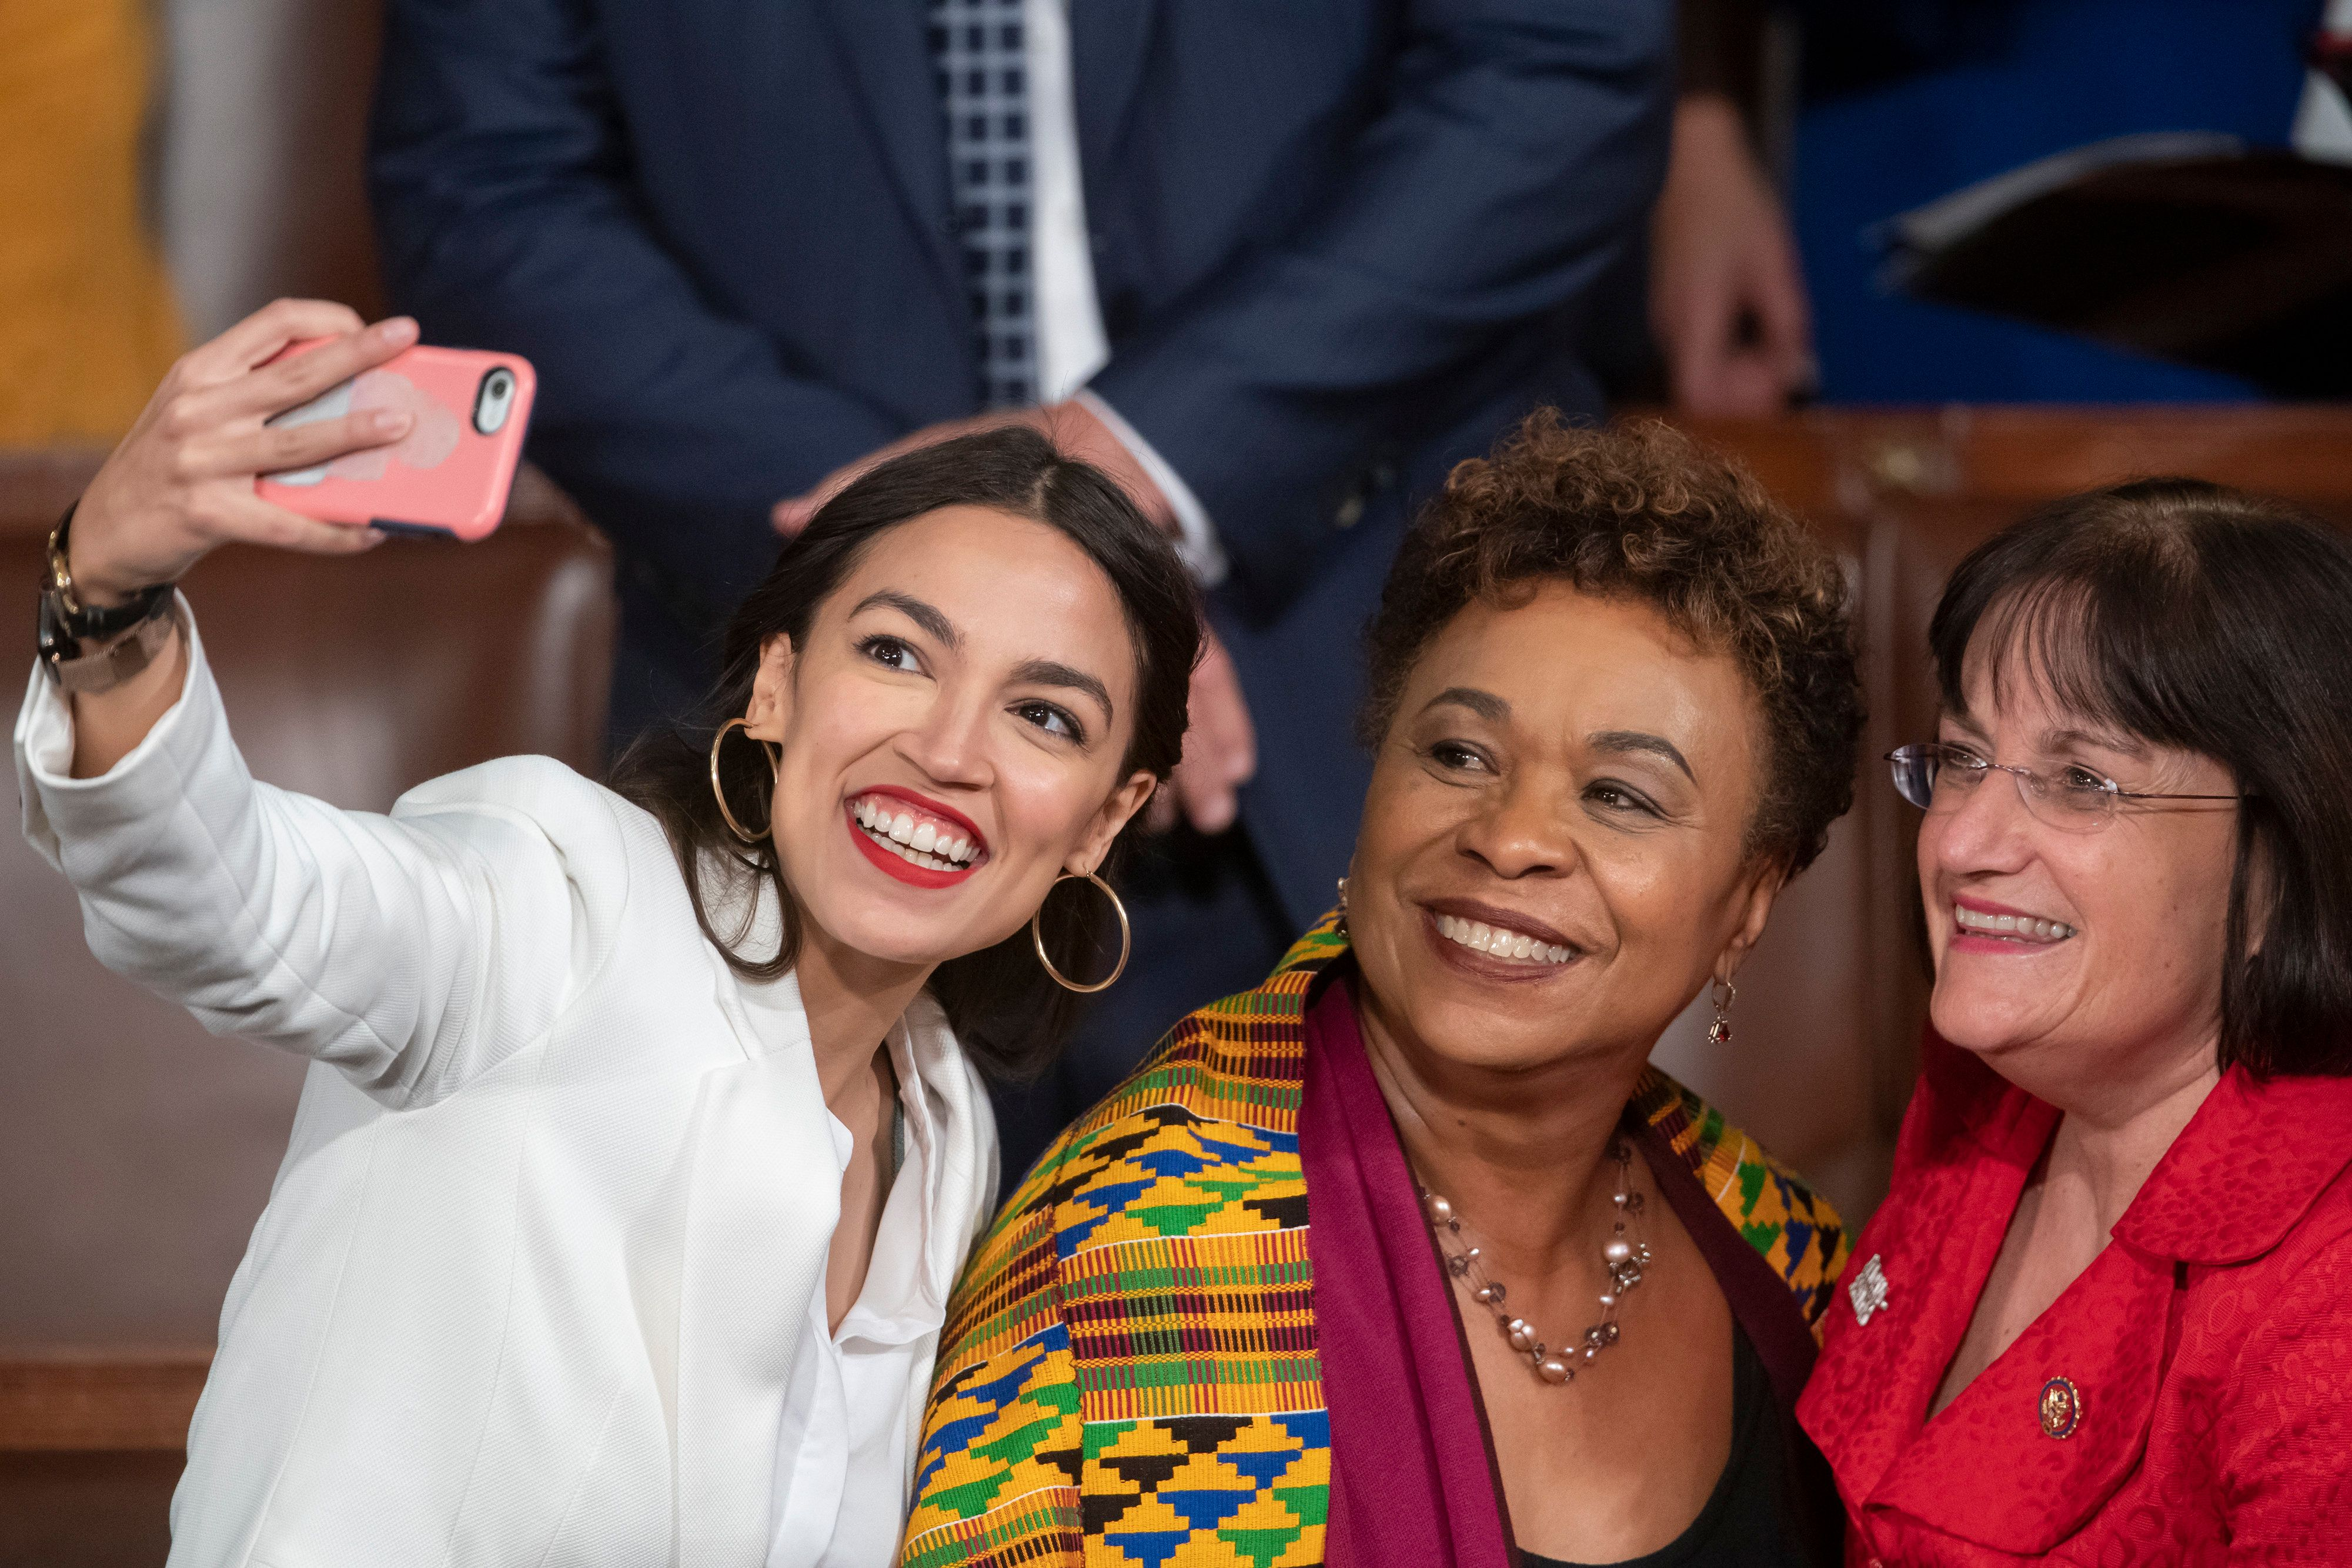 Rep.-elect Alexandria Ocasio-Cortez, a freshman Democrat representing New York's 14th Congressional District, takes a selfie with Rep. Ann McLane Kuster, D-NH, and Rep. Barbara Lee, D-Calif., on the first day of the 116th Congress with Democrats holding the majority, at the Capitol in Washington, Thursday,  Jan. 3, 2019. (AP Photo/J. Scott Applewhite)